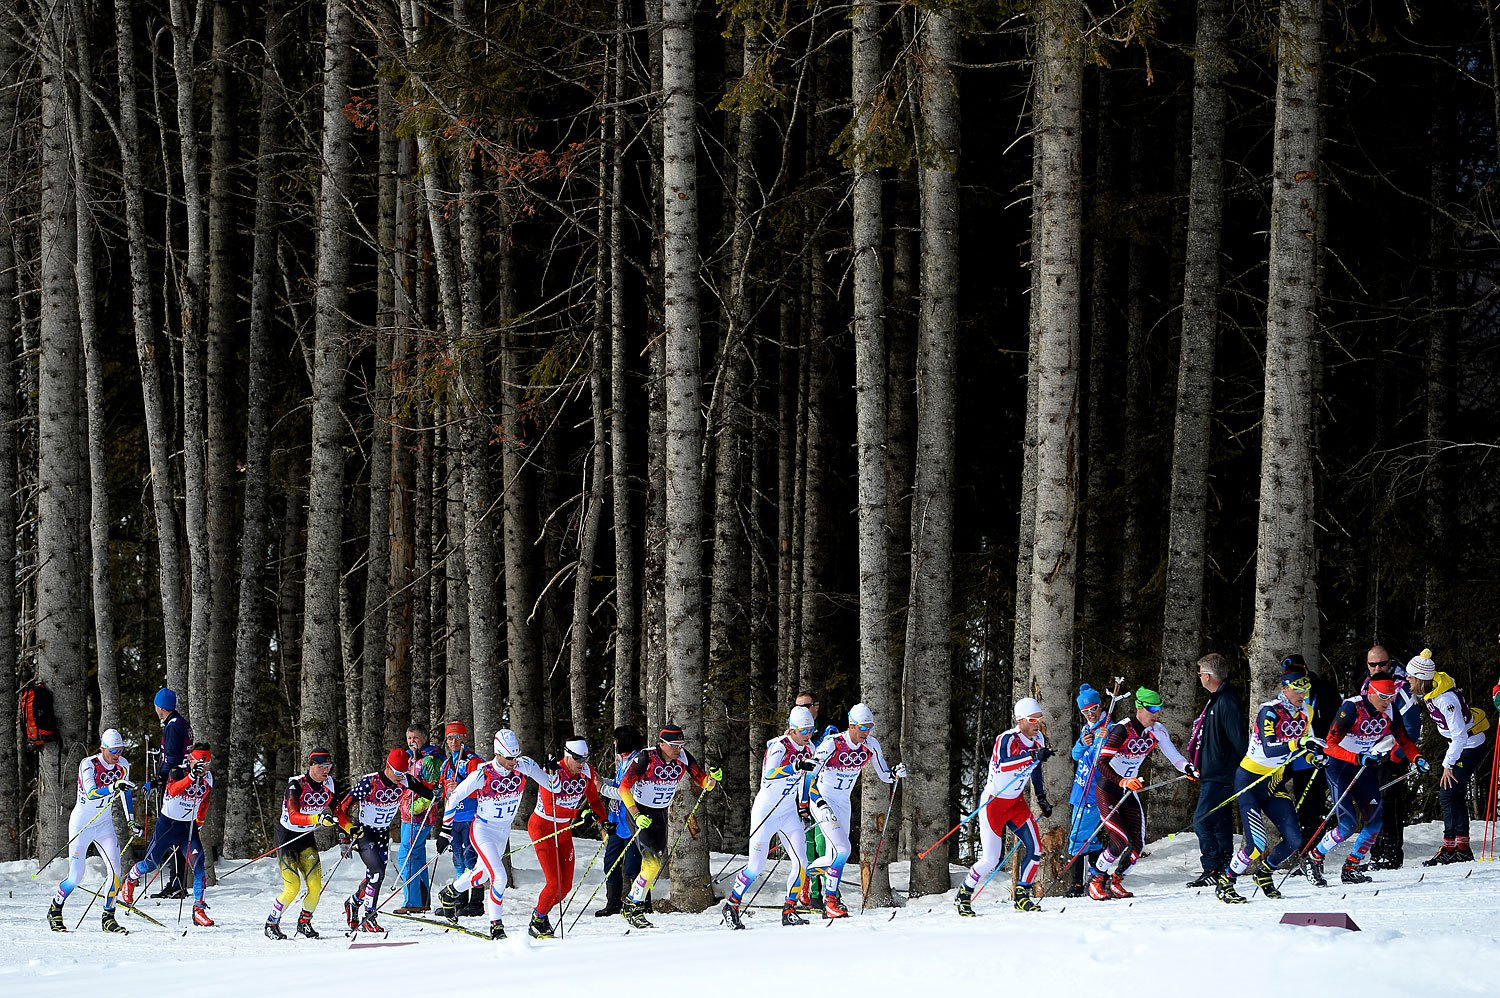 Skiers compete in the Men's Skiathlon 15 km Classic + 15 km Free during day two of the Sochi 2014 Winter Olympics at Laura Cross-country Ski & Biathlon Center on Feb. 9 2014.